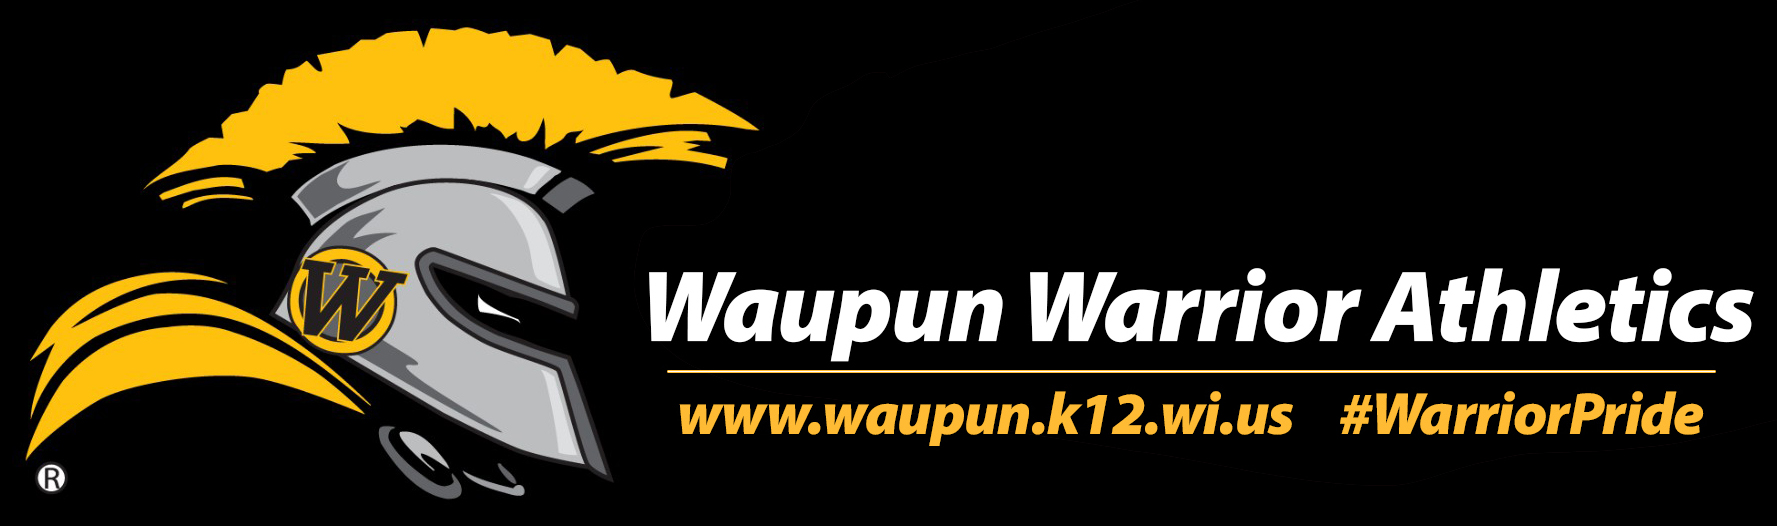 Waupun Warrior Athletics